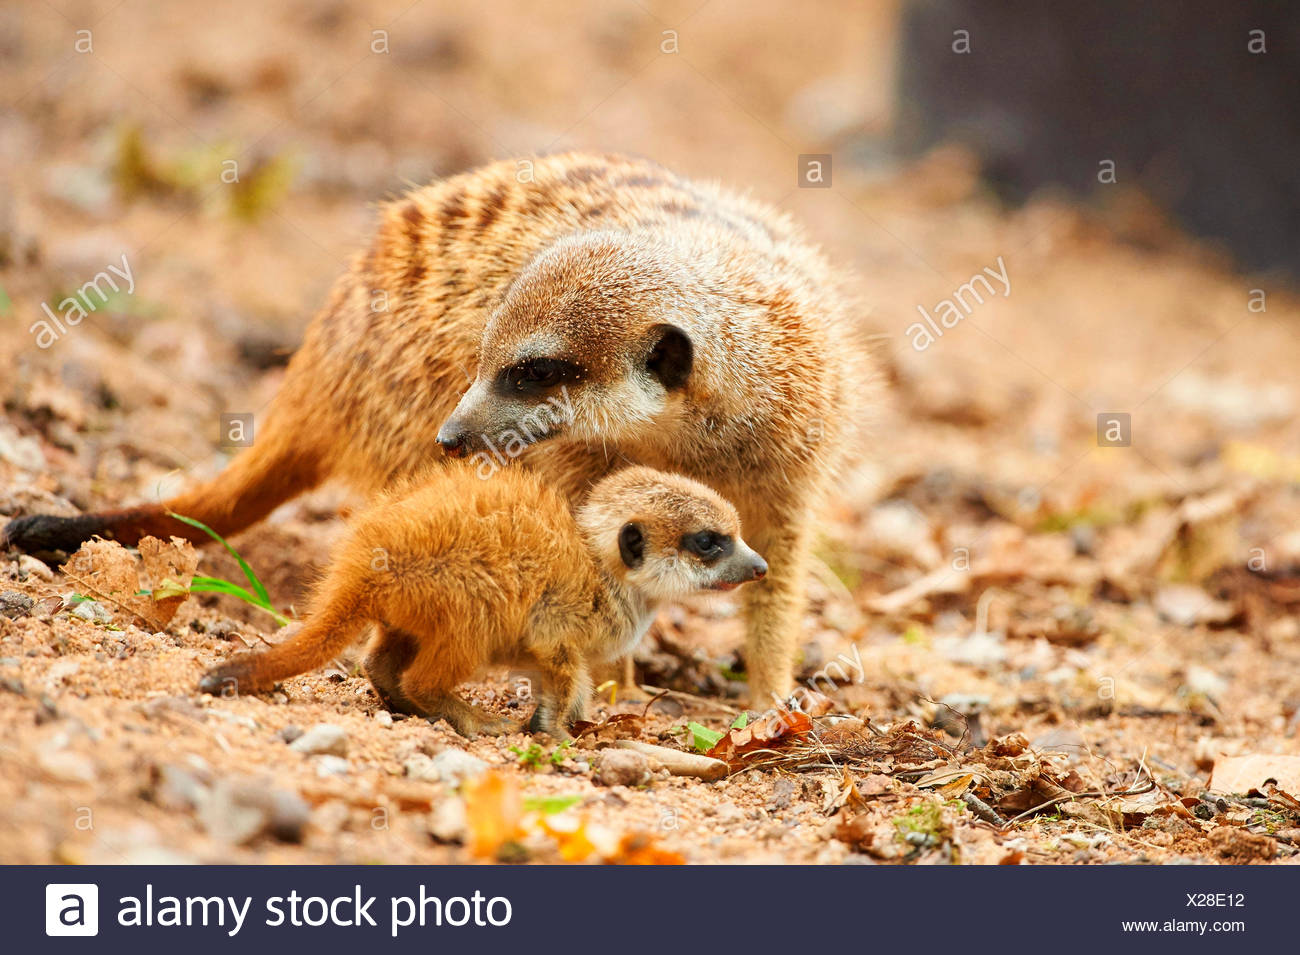 À queue fine, suricate (Suricata suricatta) suricates, mère avec son jeune Photo Stock